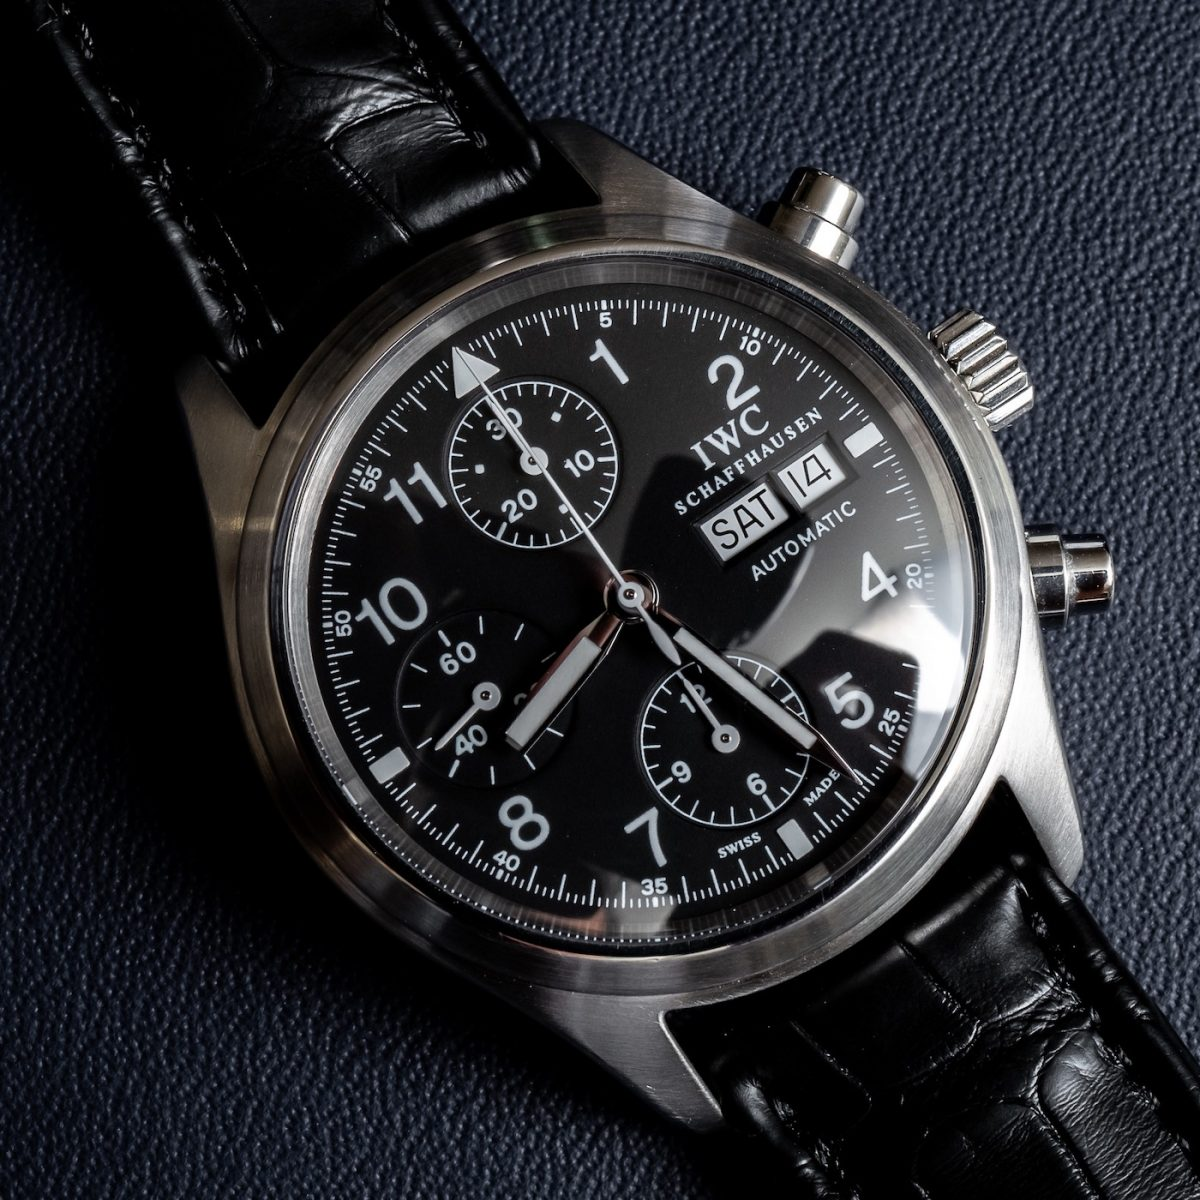 On Hands of AAA  IWC Pilot's Watch Chronograph Ref. 3706 Replica Watch